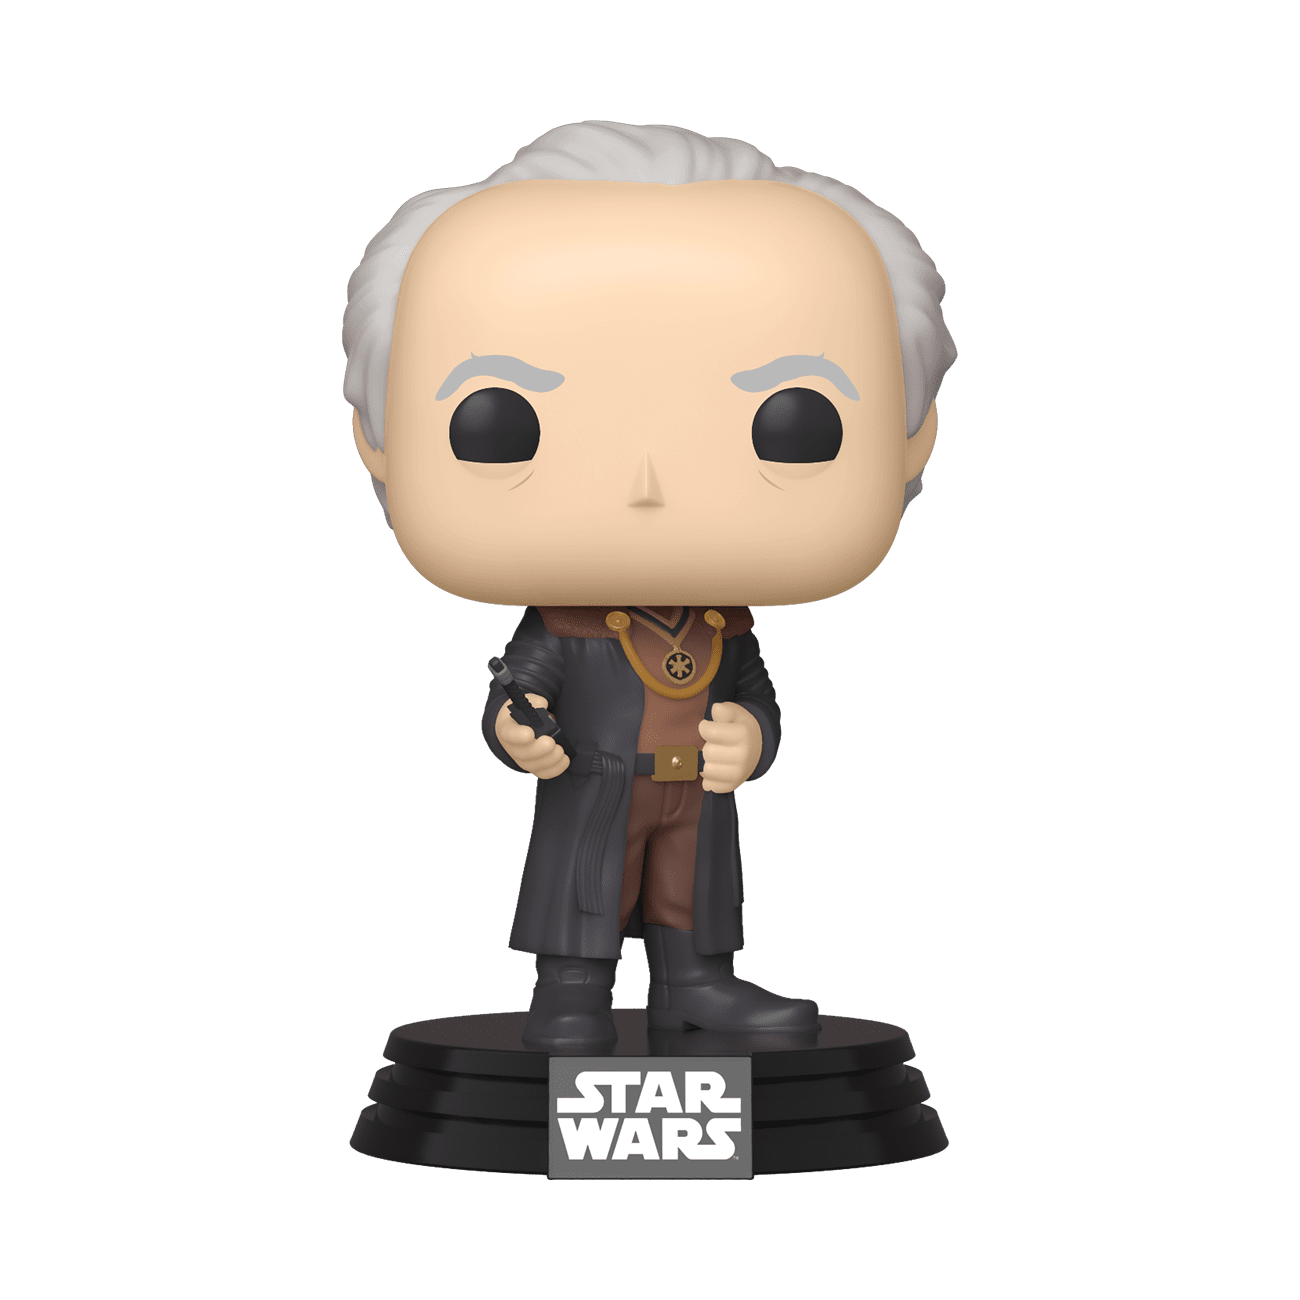 Star Wars: The Mandalorian The Client Pop! Vinyl Figure